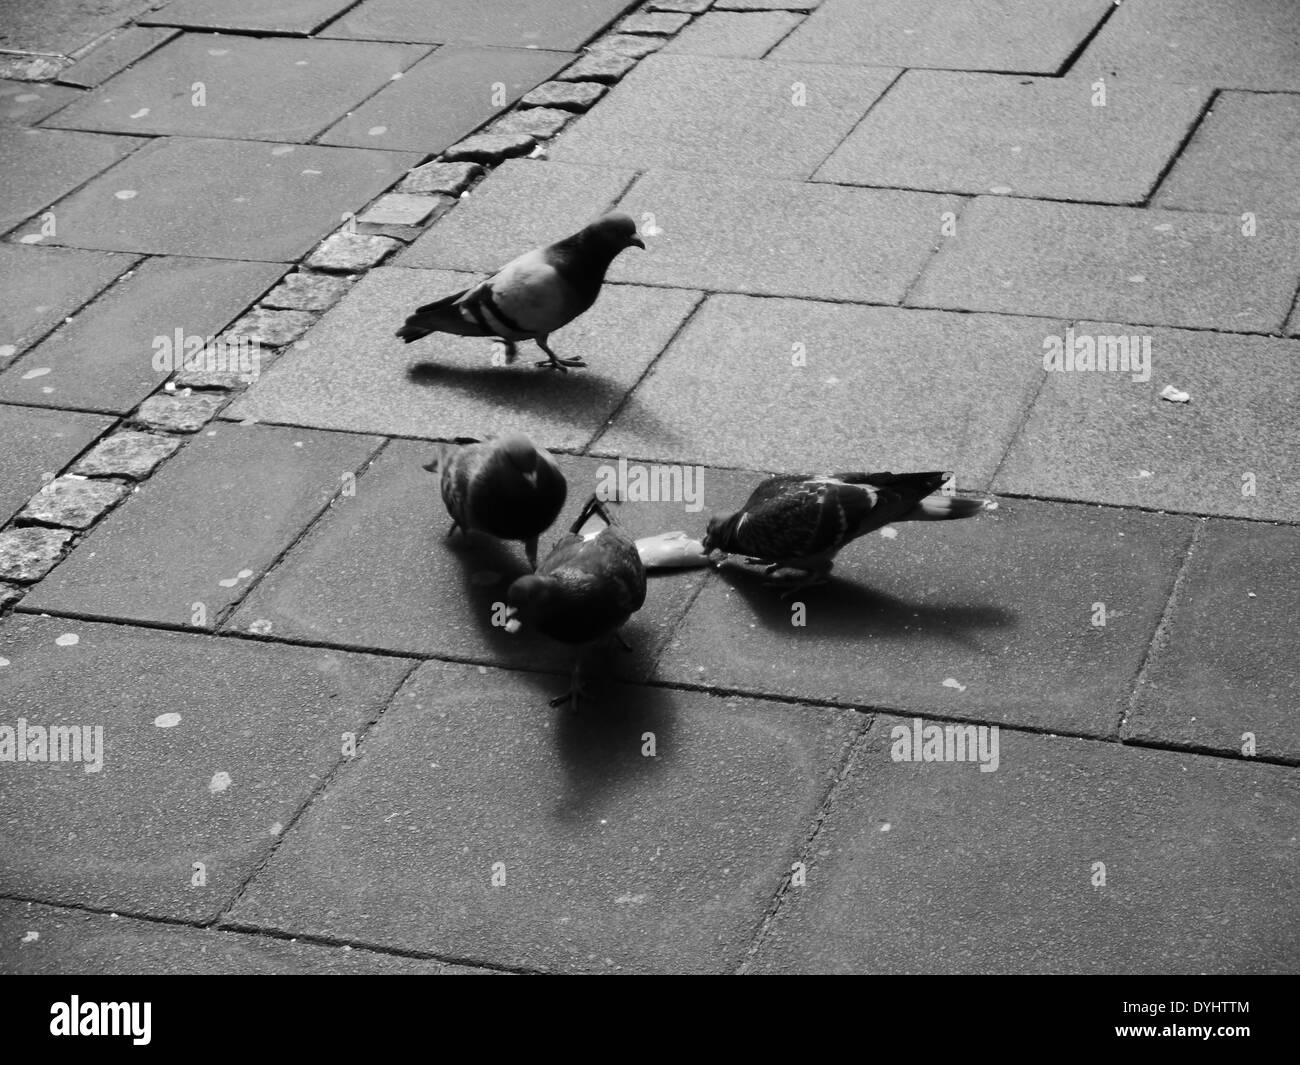 Abstract image of four pigeons scavenging for food on city street, Newcastle upon Tyne, England, UK. Monochrome - Stock Image